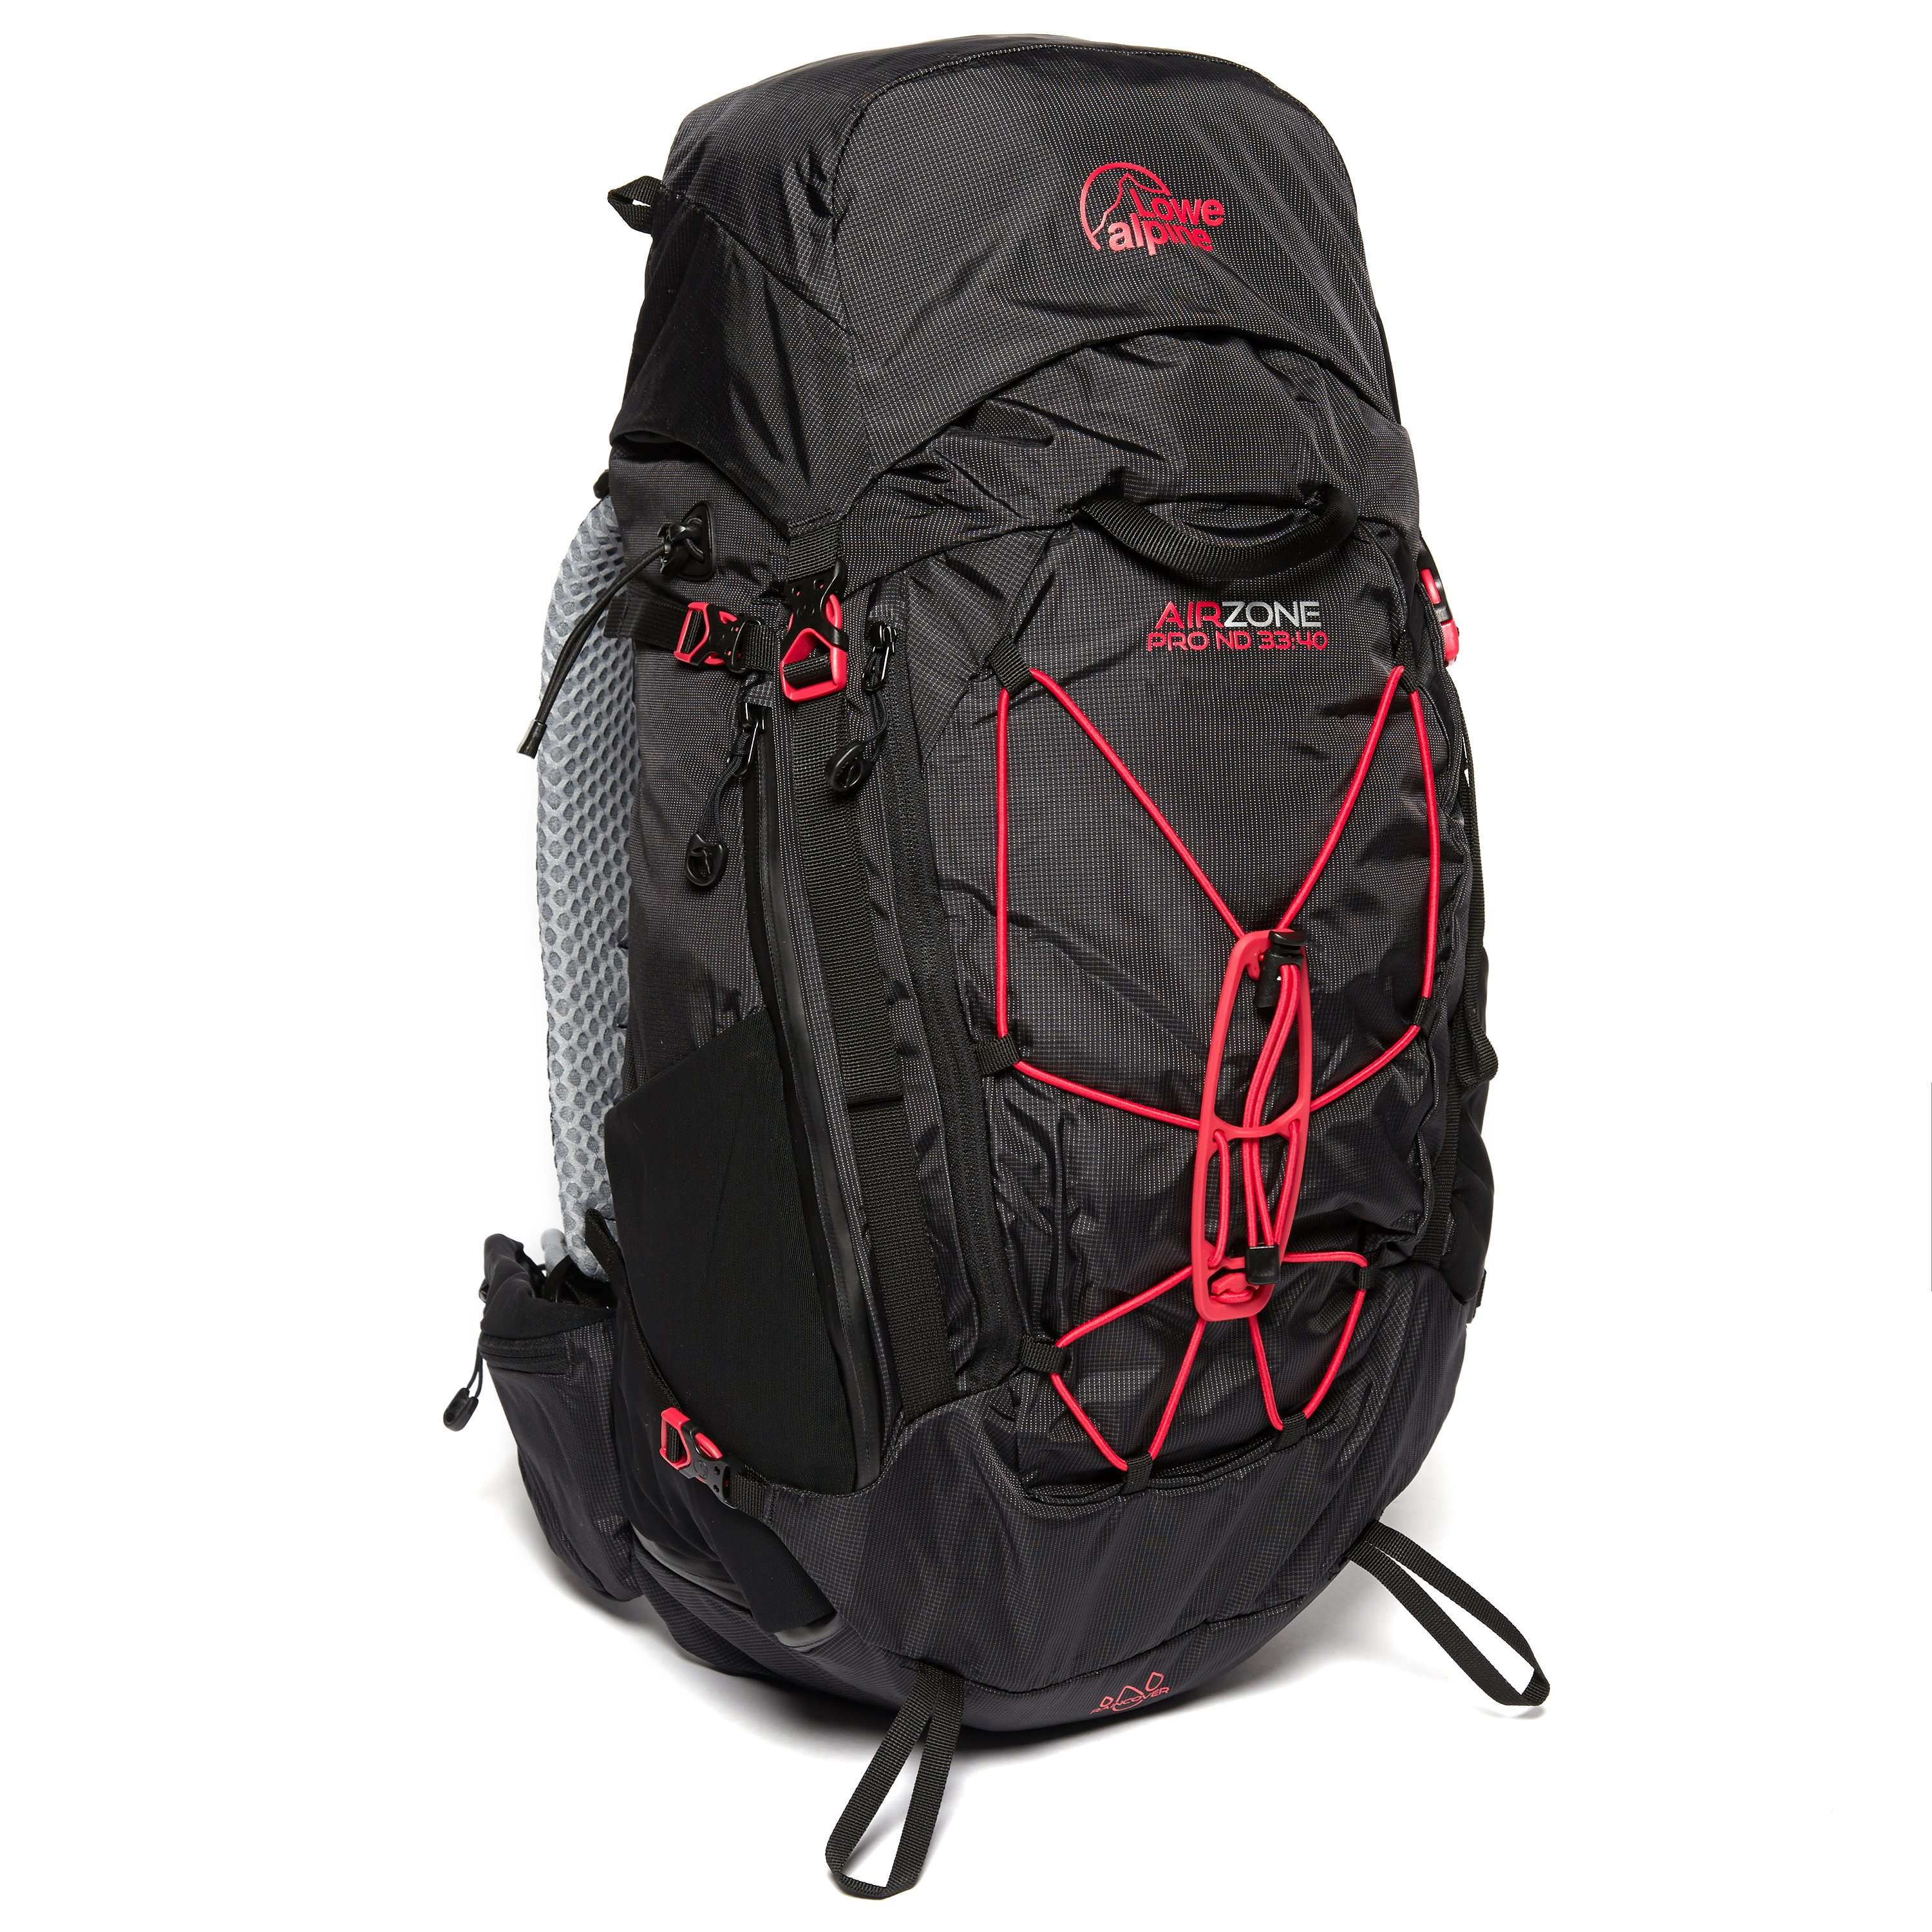 LOWE ALPINE AirZone Pro ND 33:40L Backpack